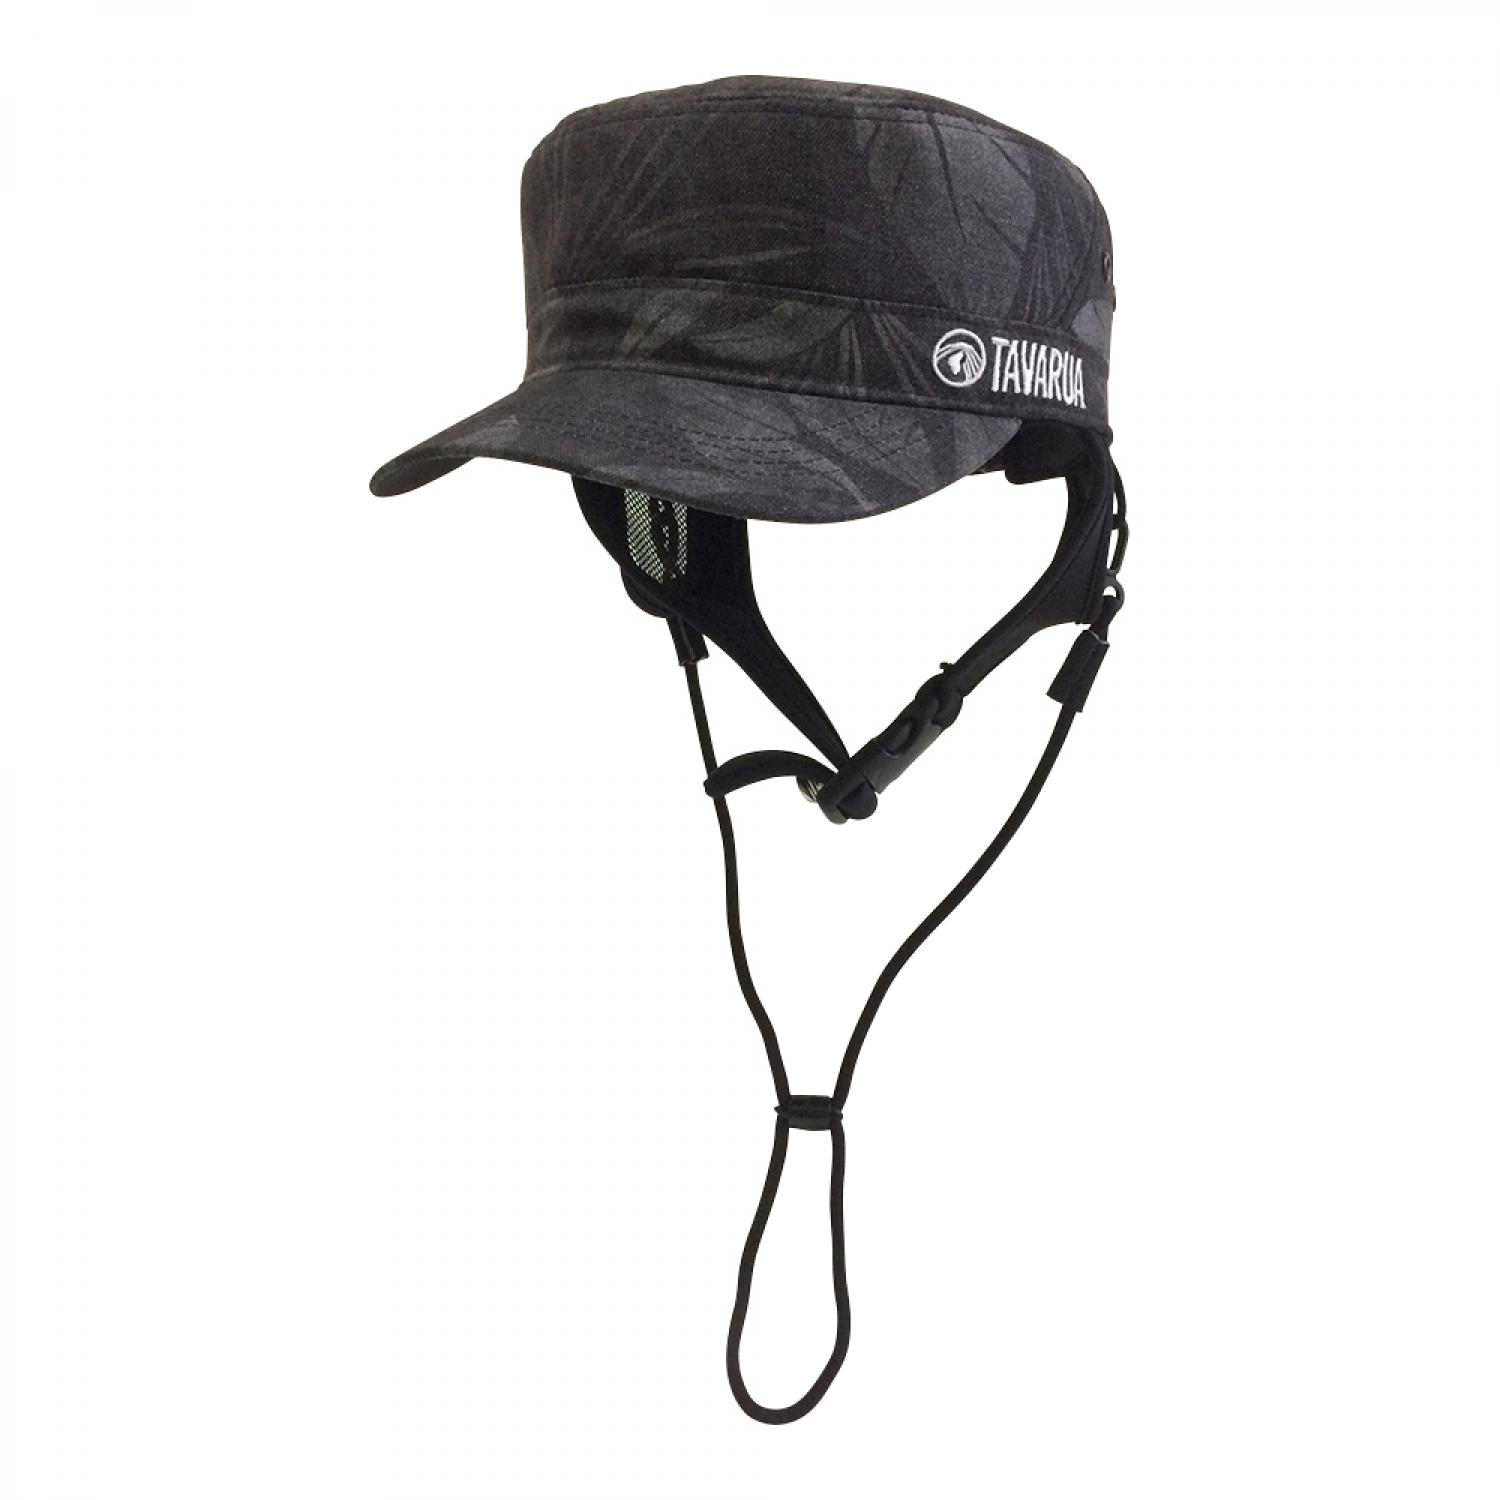 TAVARUA ウォームサーフCAP LEAF VINTAGE BLACK